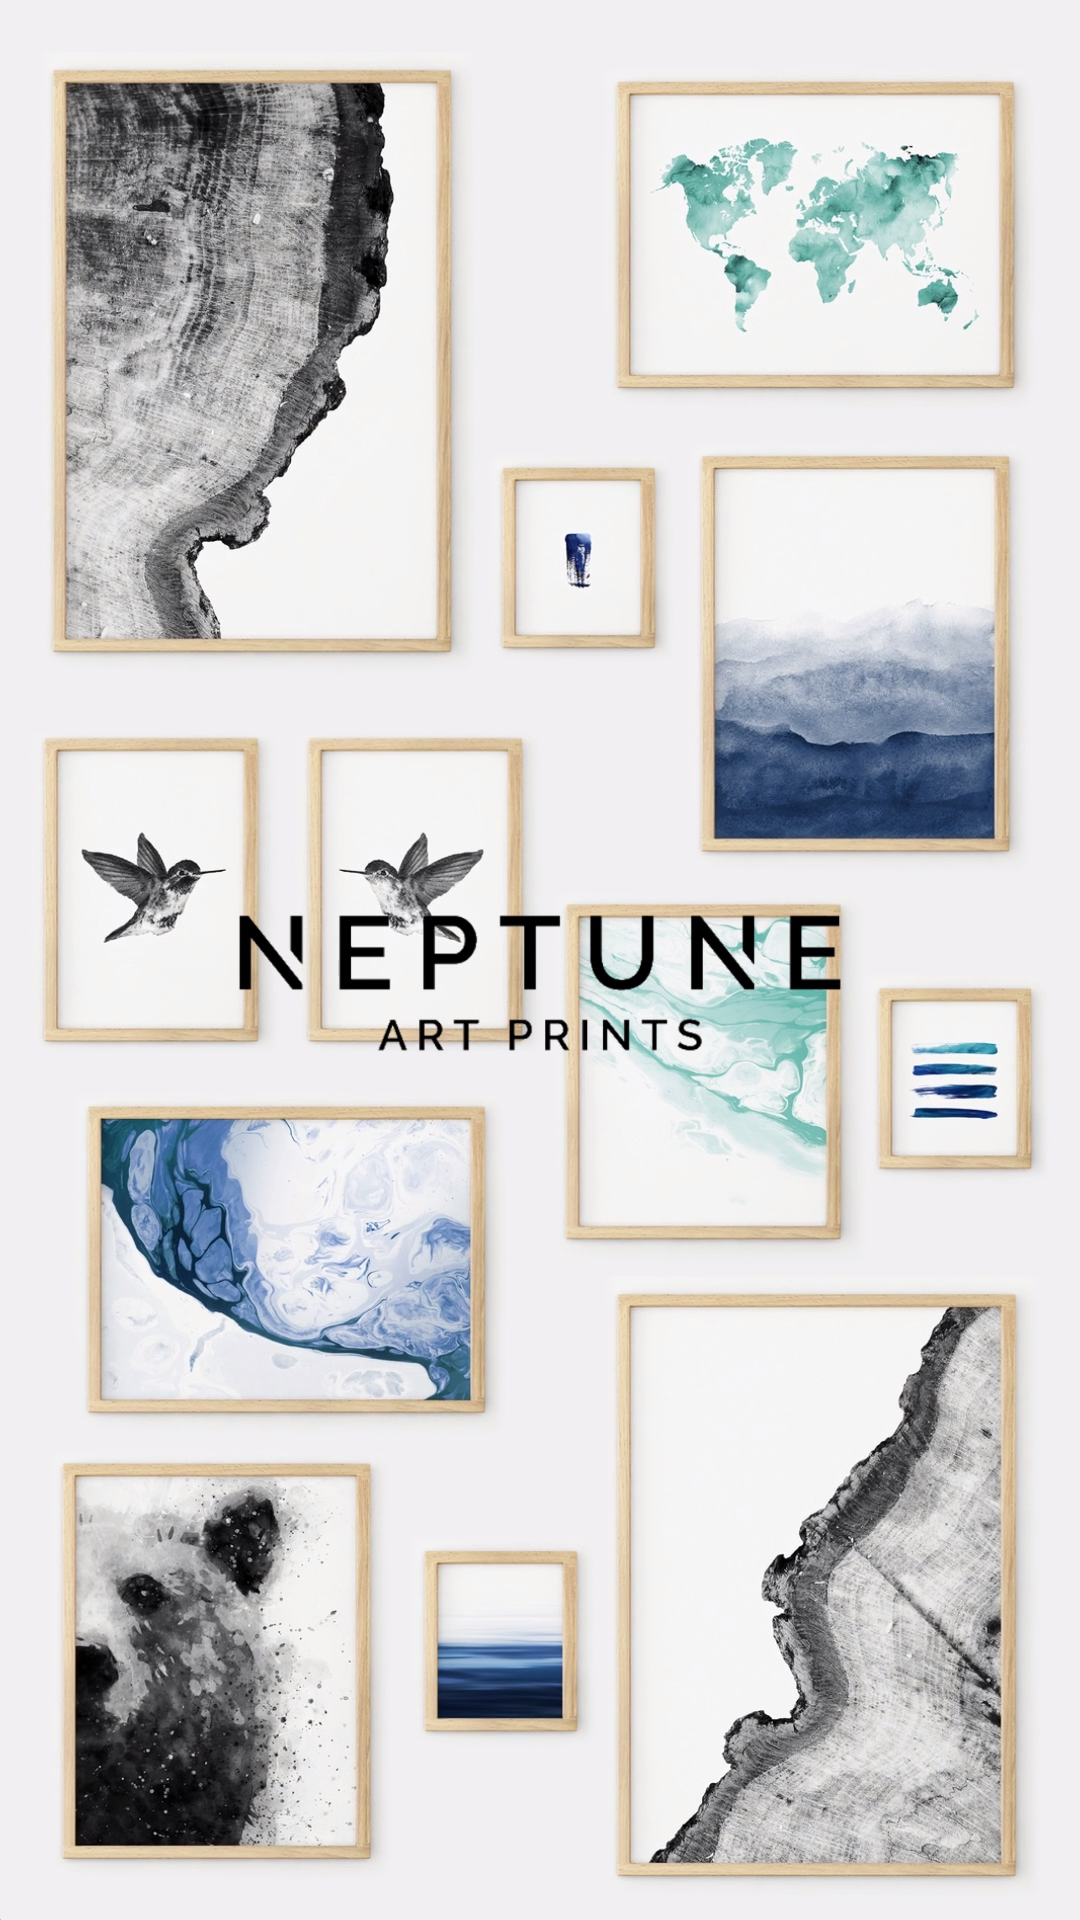 Photo of Printable Wall Art by Neptune Art Prints